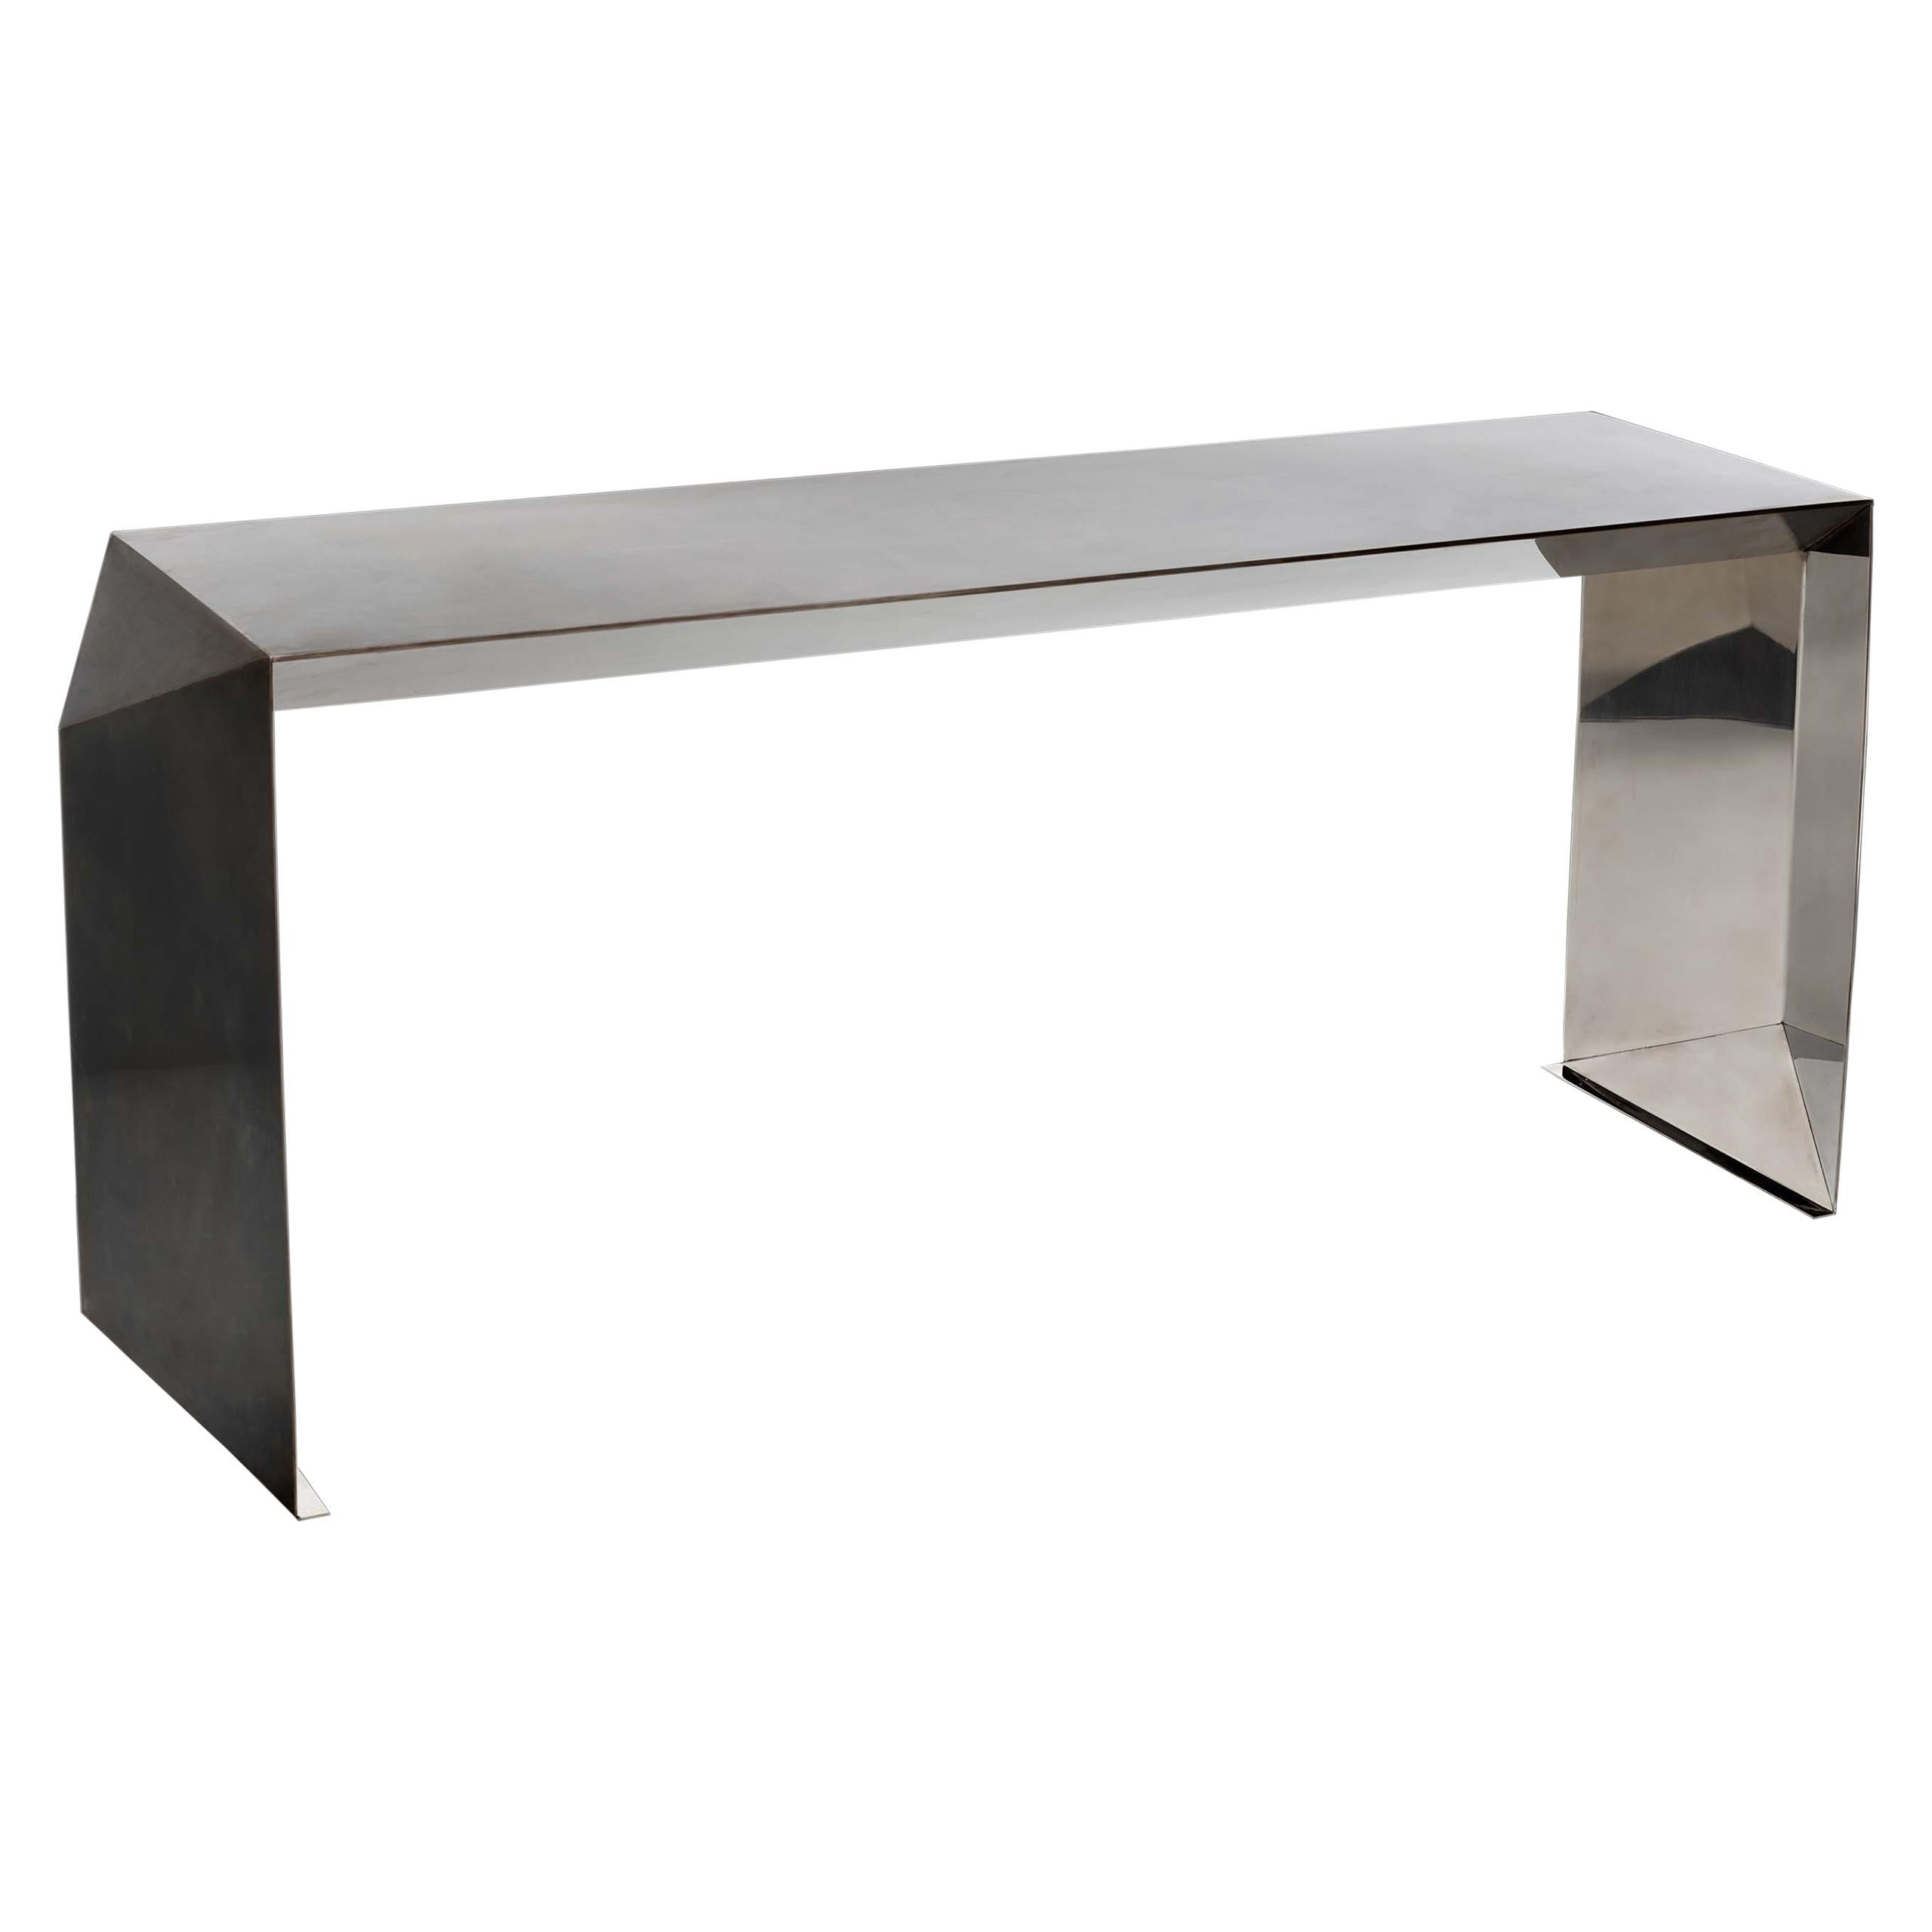 Donghia Origami Console Table In Stainless Steel And Polished Mirror Finish